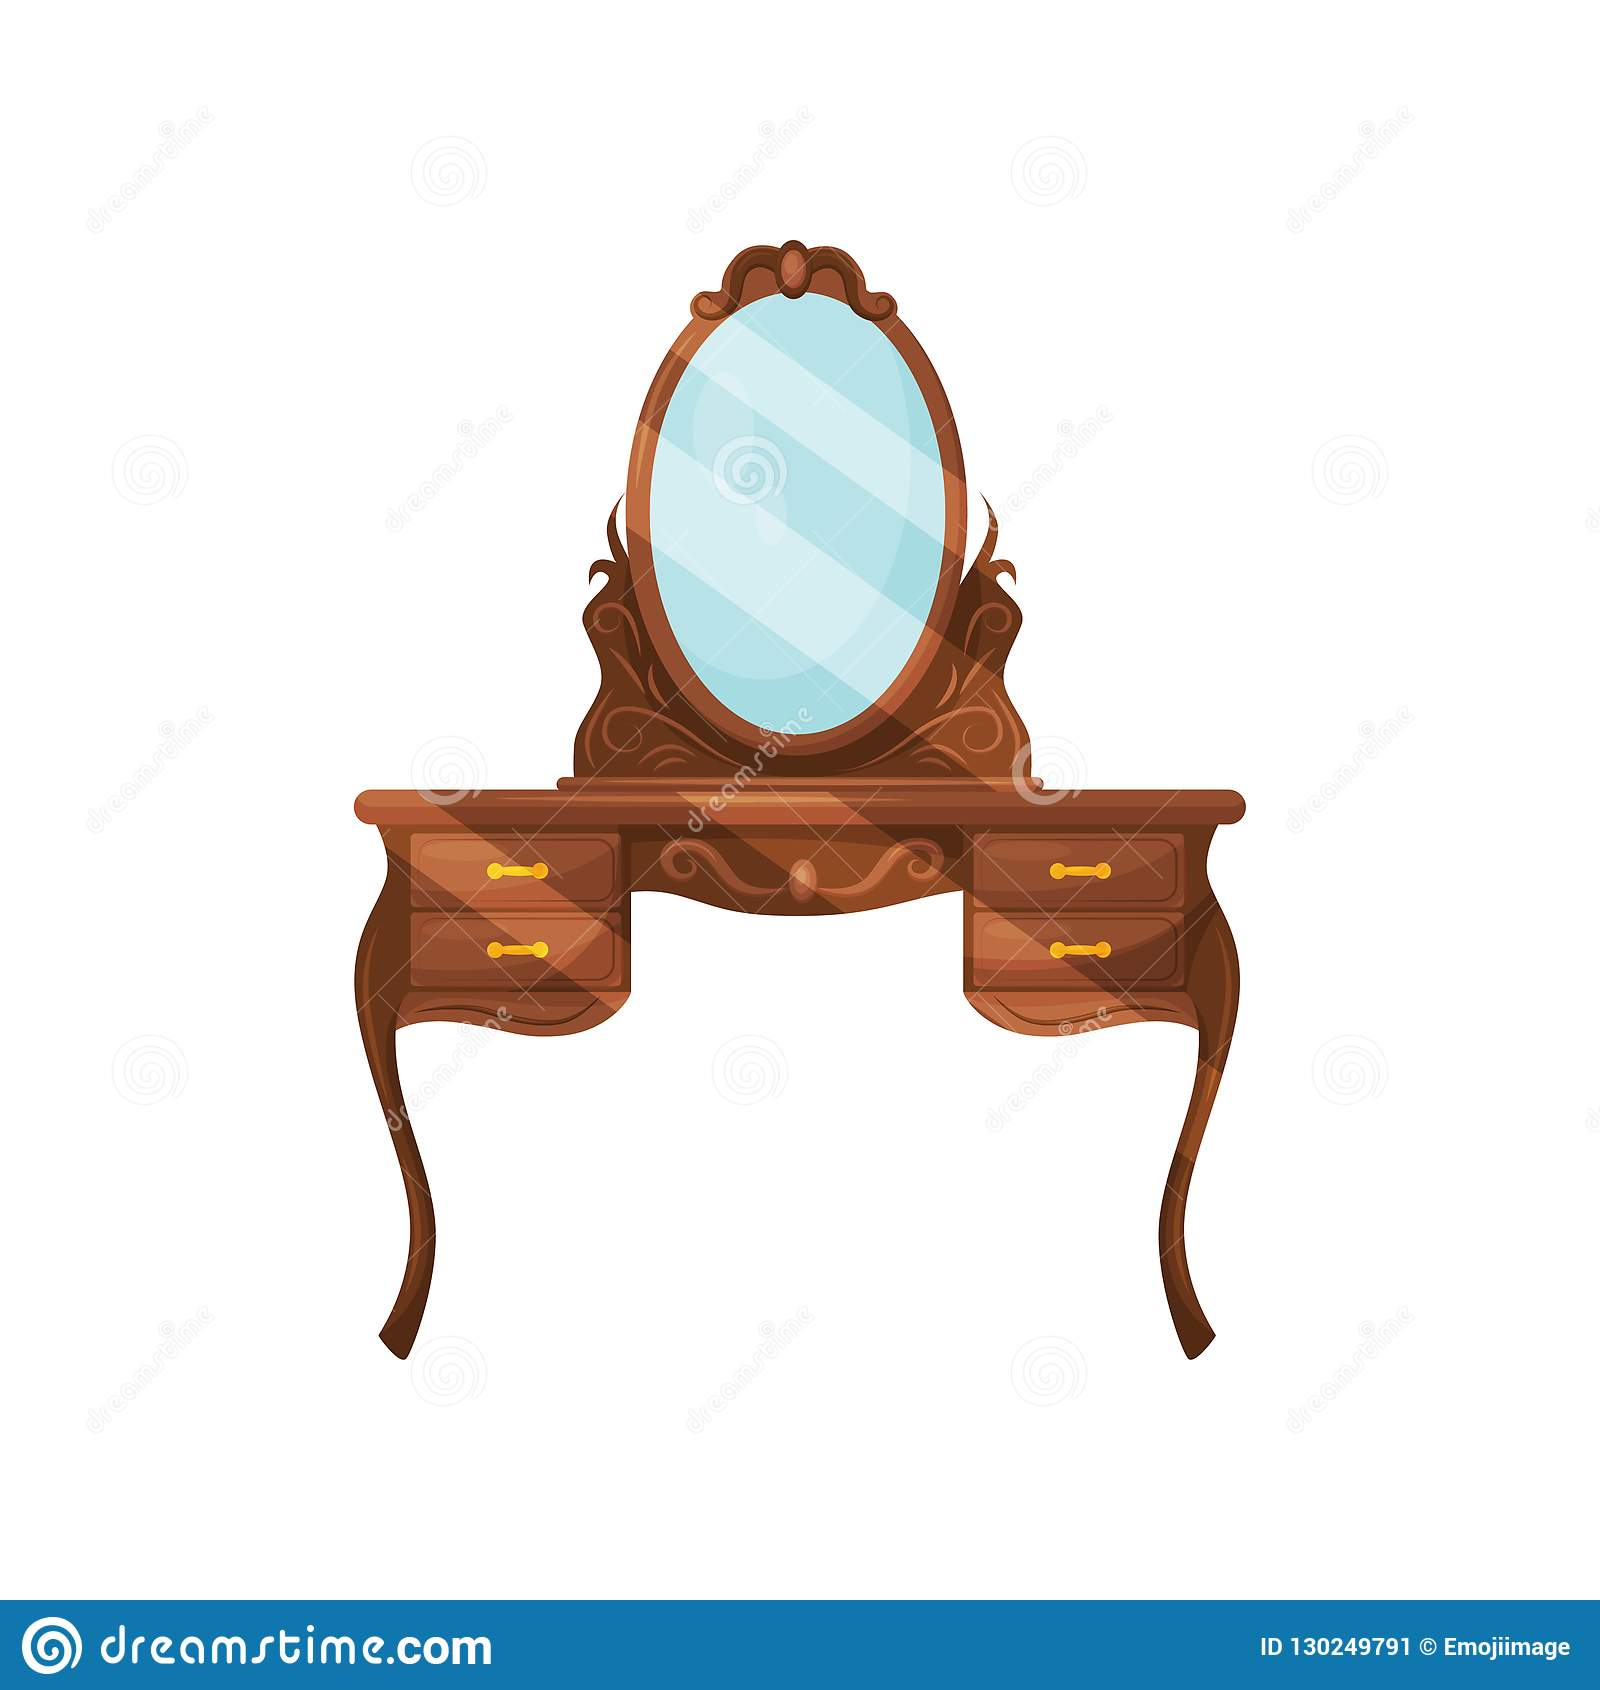 Dresser With Oval Mirror And Shelves Wooden Dressing Table